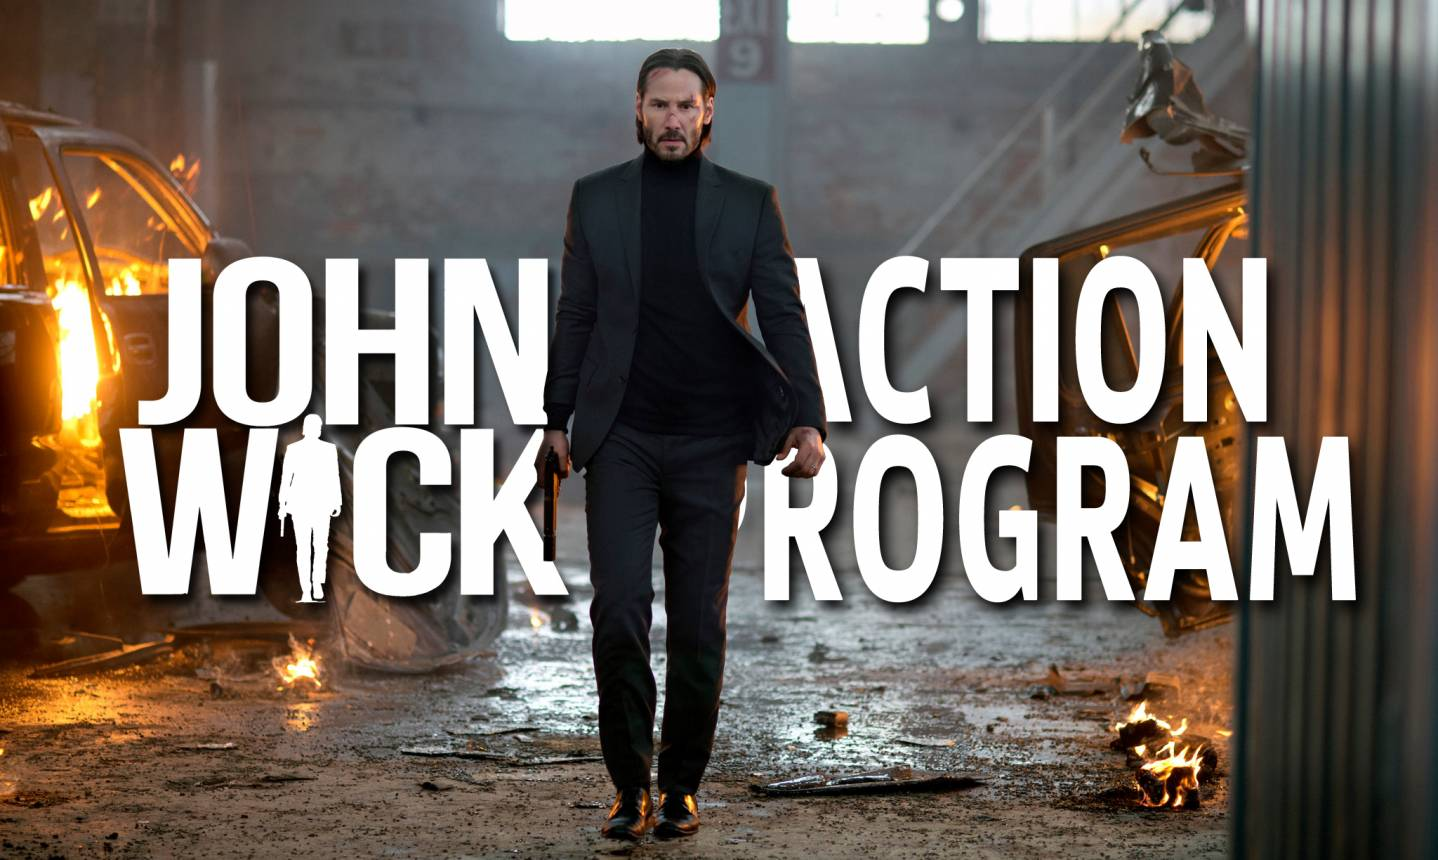 John Wick Action program Budakeszin